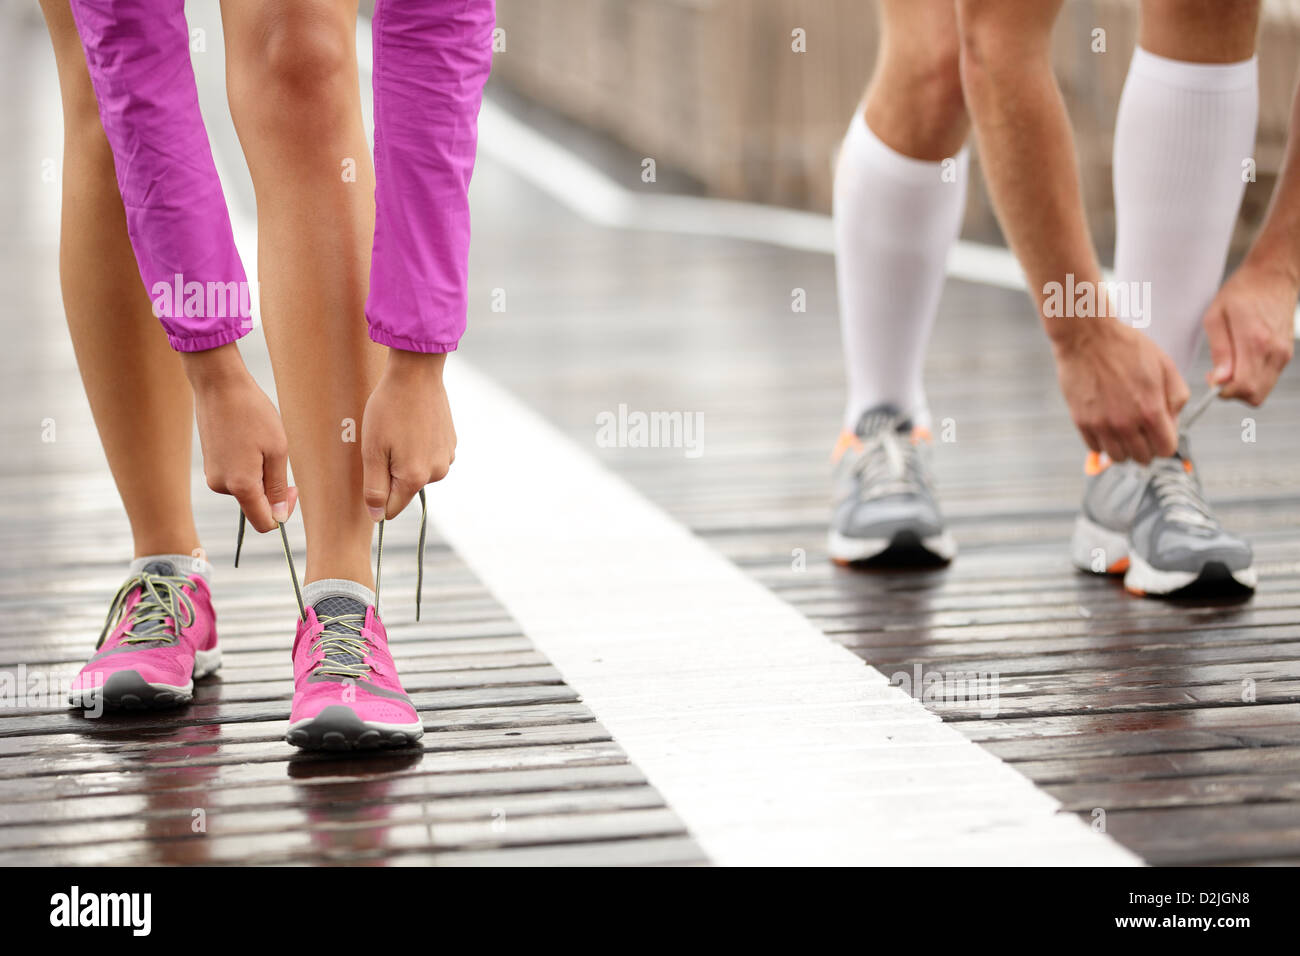 Low section of couple tying shoelaces while jogging on Brooklyn Bridge, New York - Stock Photo